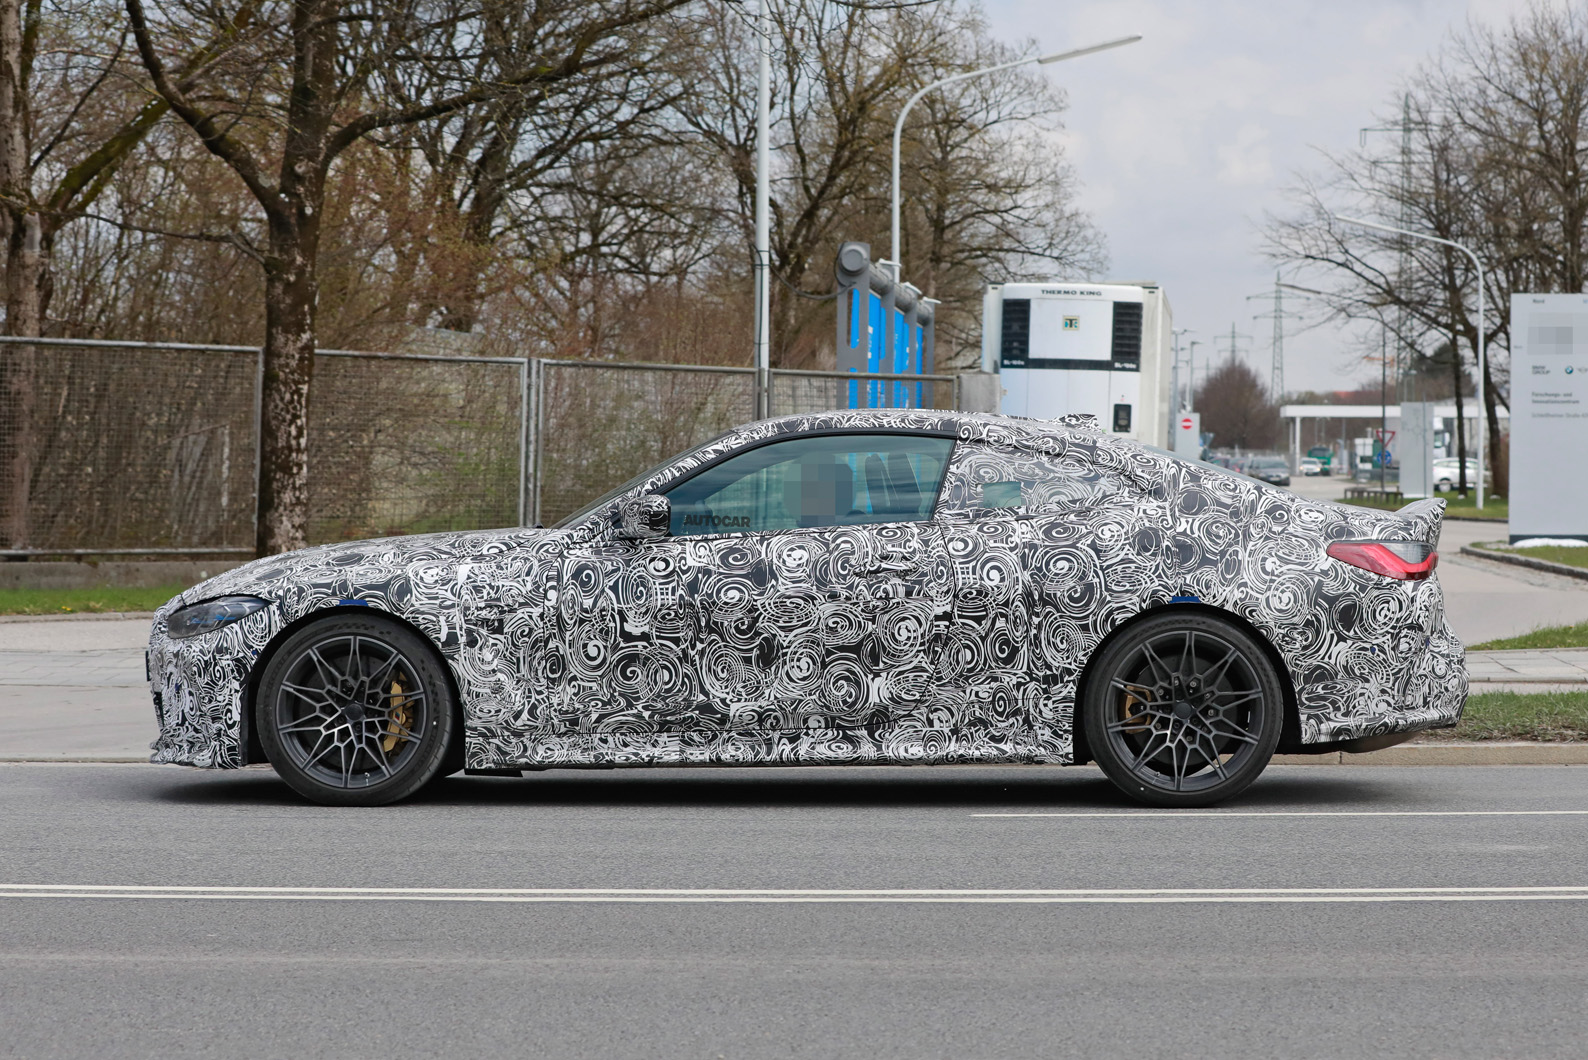 New 2022 BMW M4 CSL primed as lightweight track weapon   Autocar